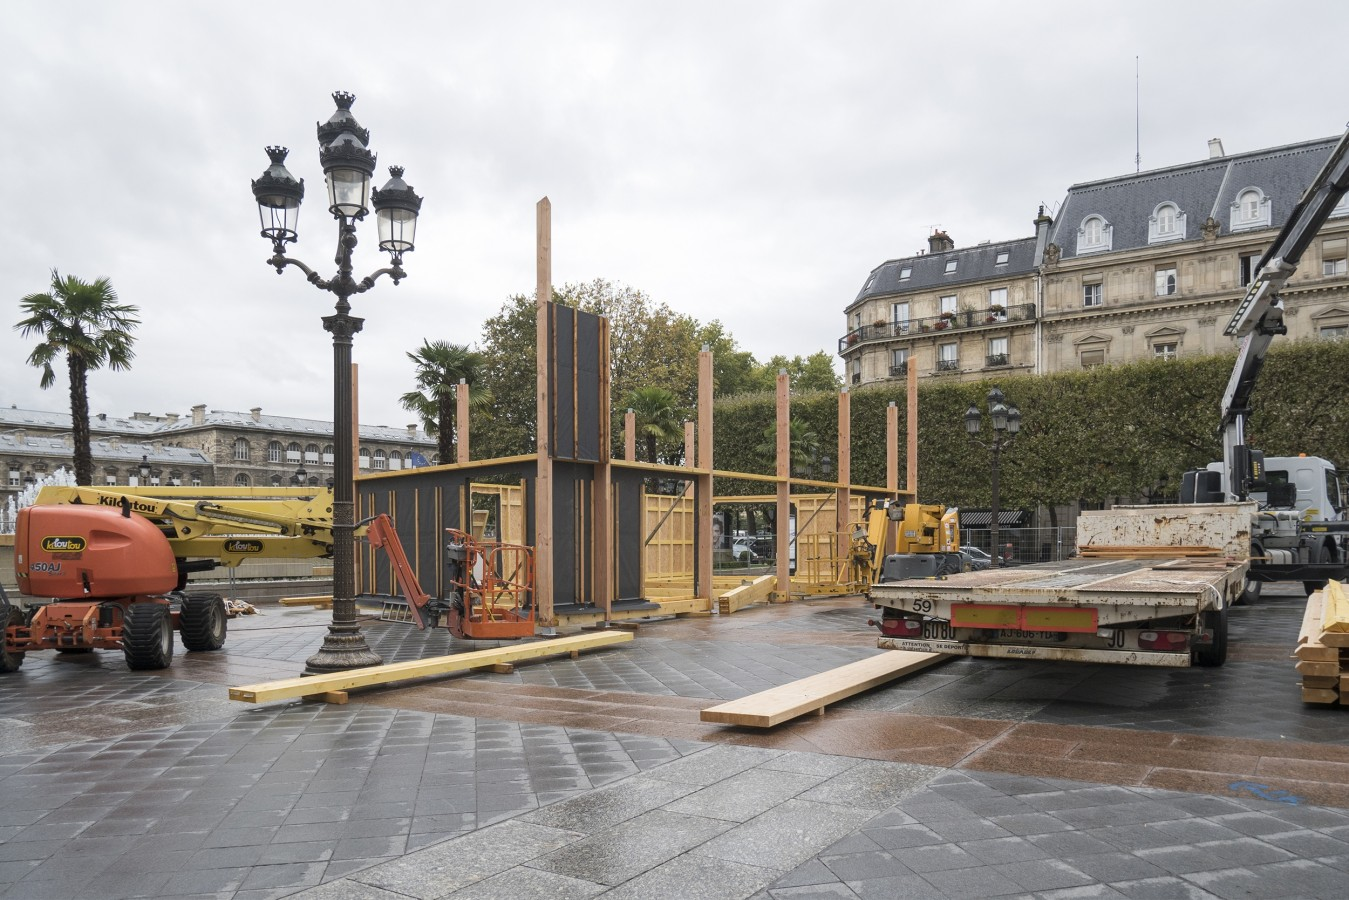 Un chantier au coeur de Paris - 16 septembre